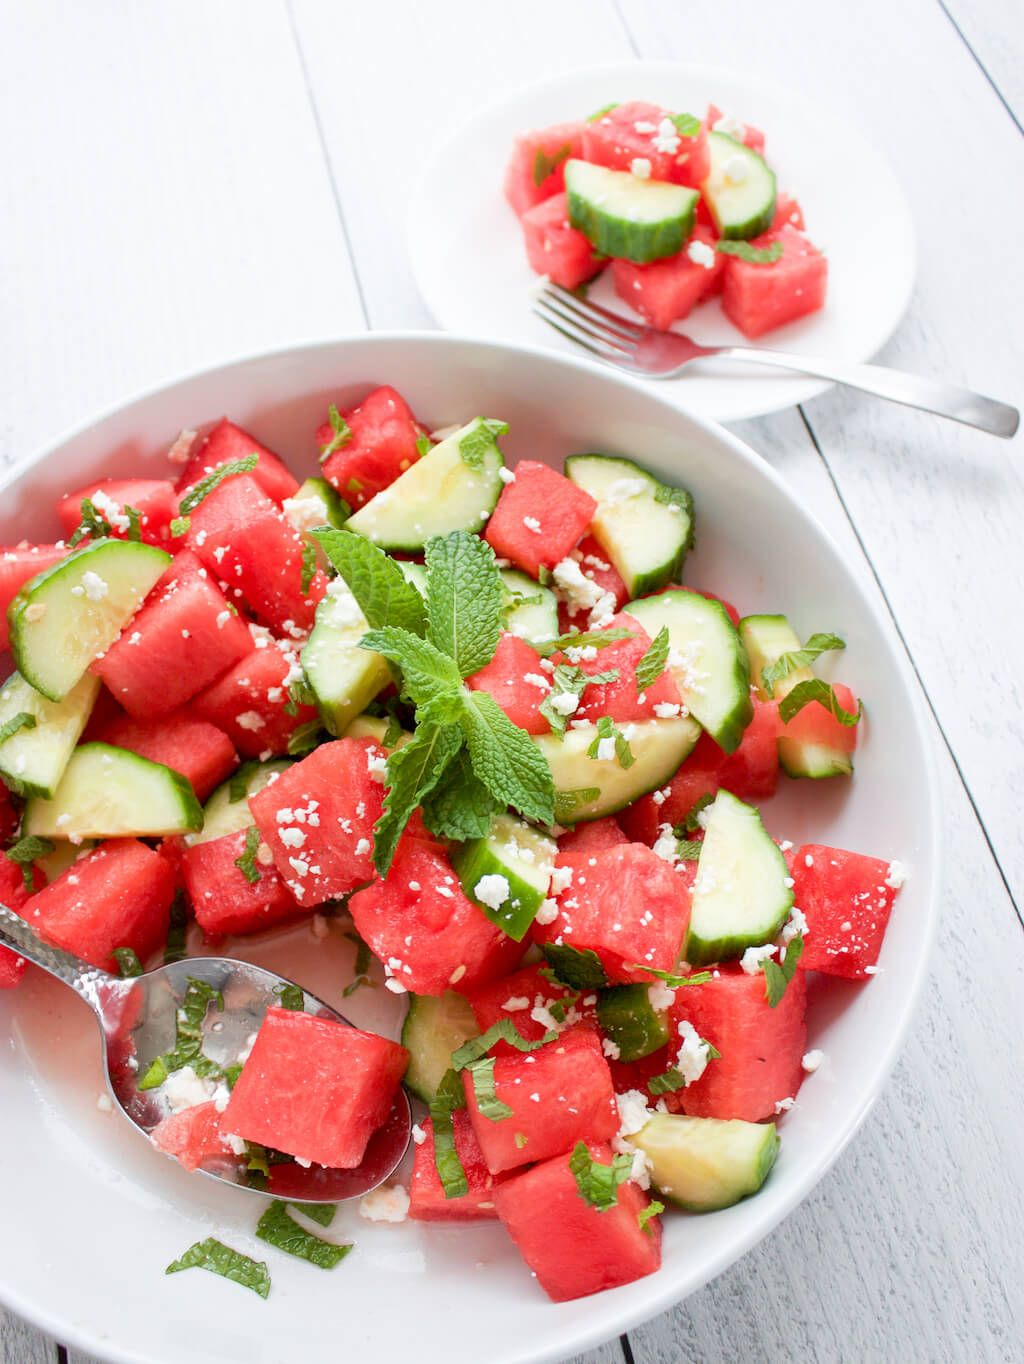 Strawberry, Cucumber and Melon Salad Recipe   Food Network Kitchen   Food Network